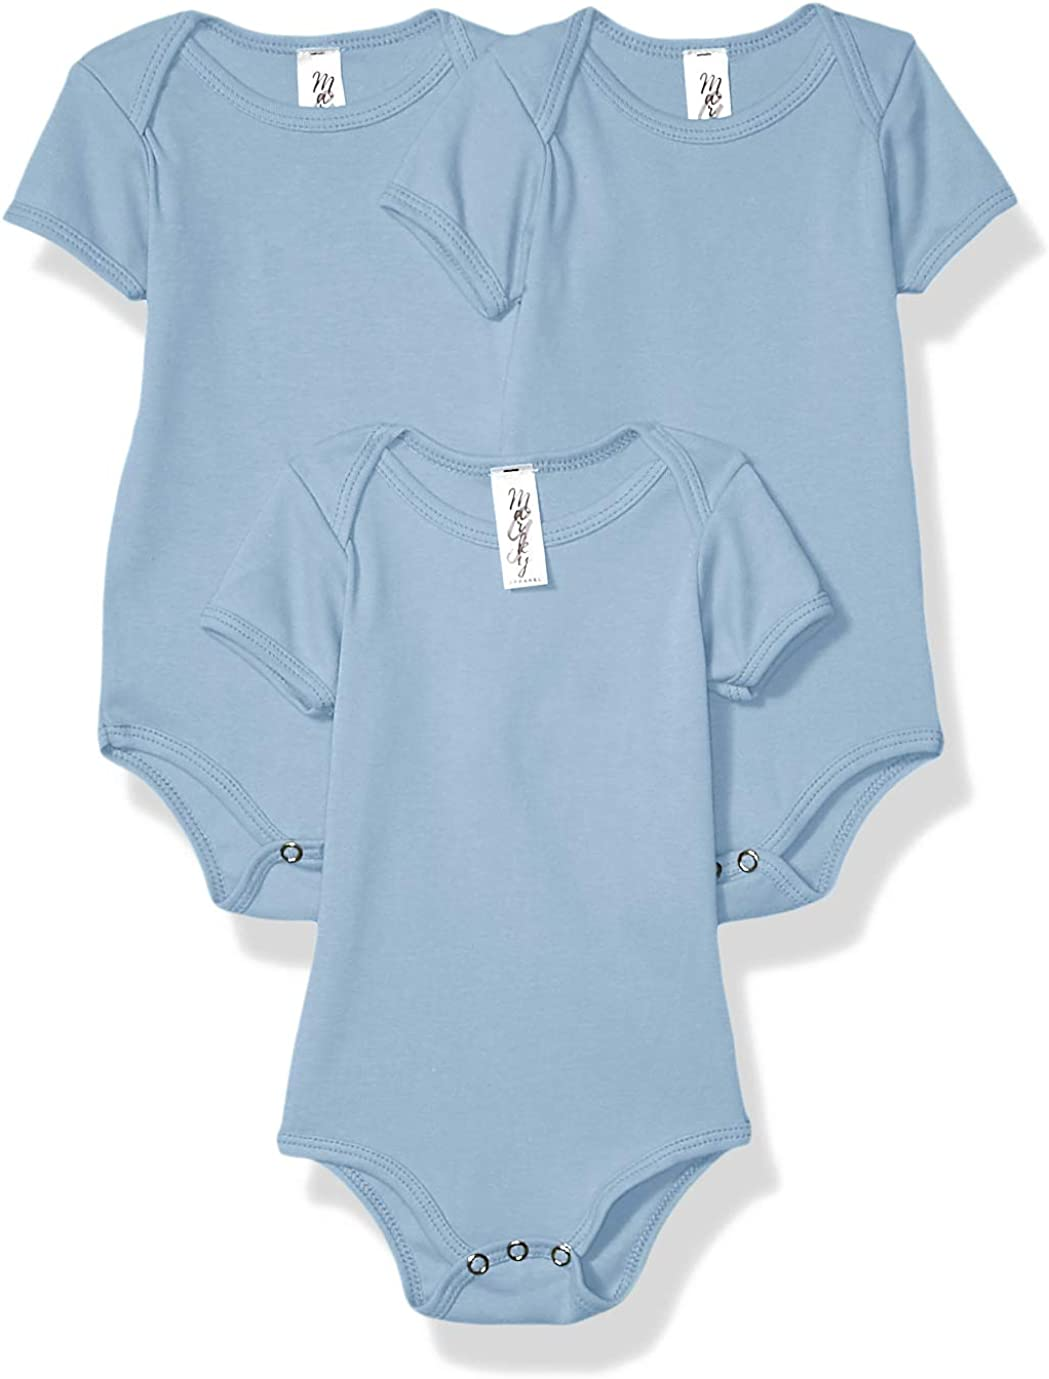 Marky G Apparel Baby Rib Short-Sleeve One-Piece-3 Pack